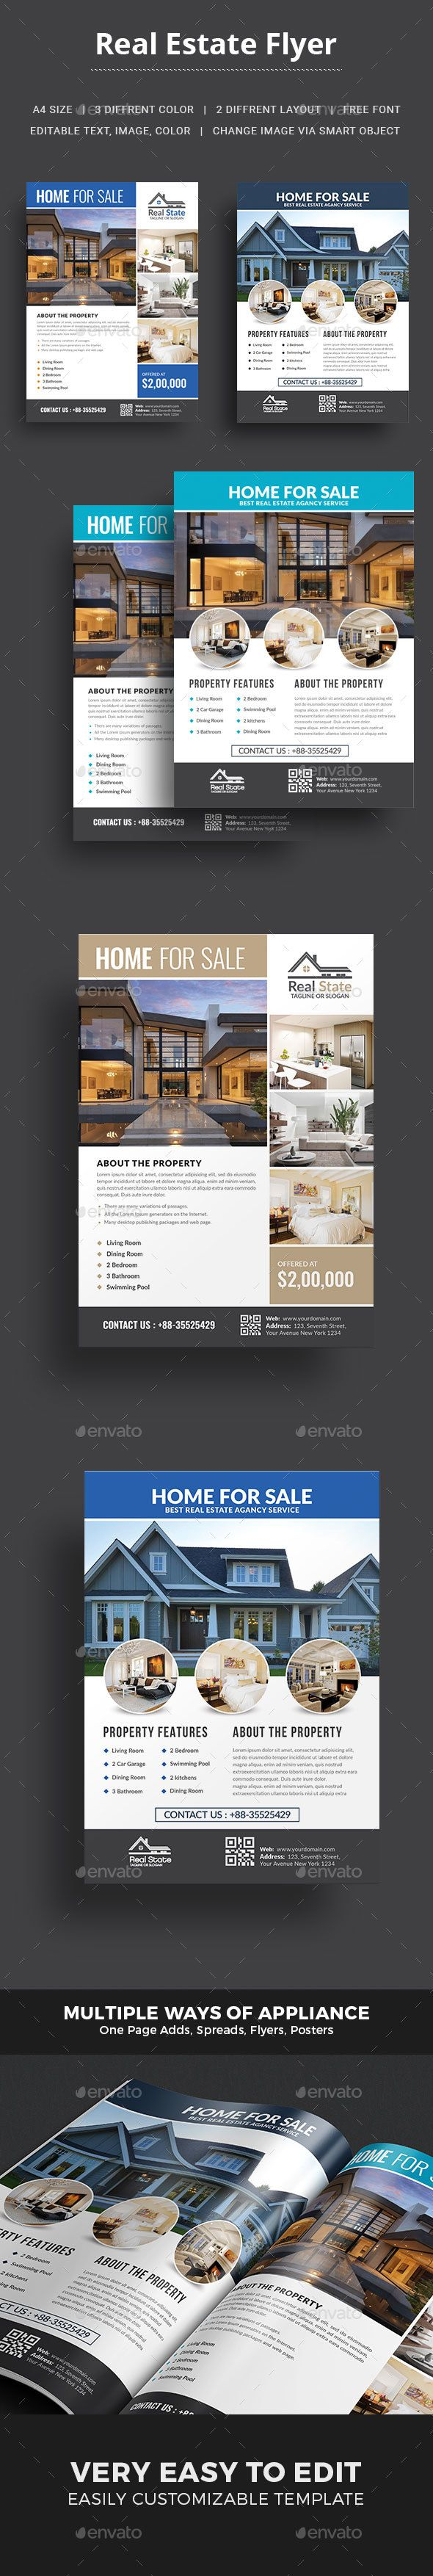 Real Estate Flyer Template | Real estate, Real estate flyers and ...